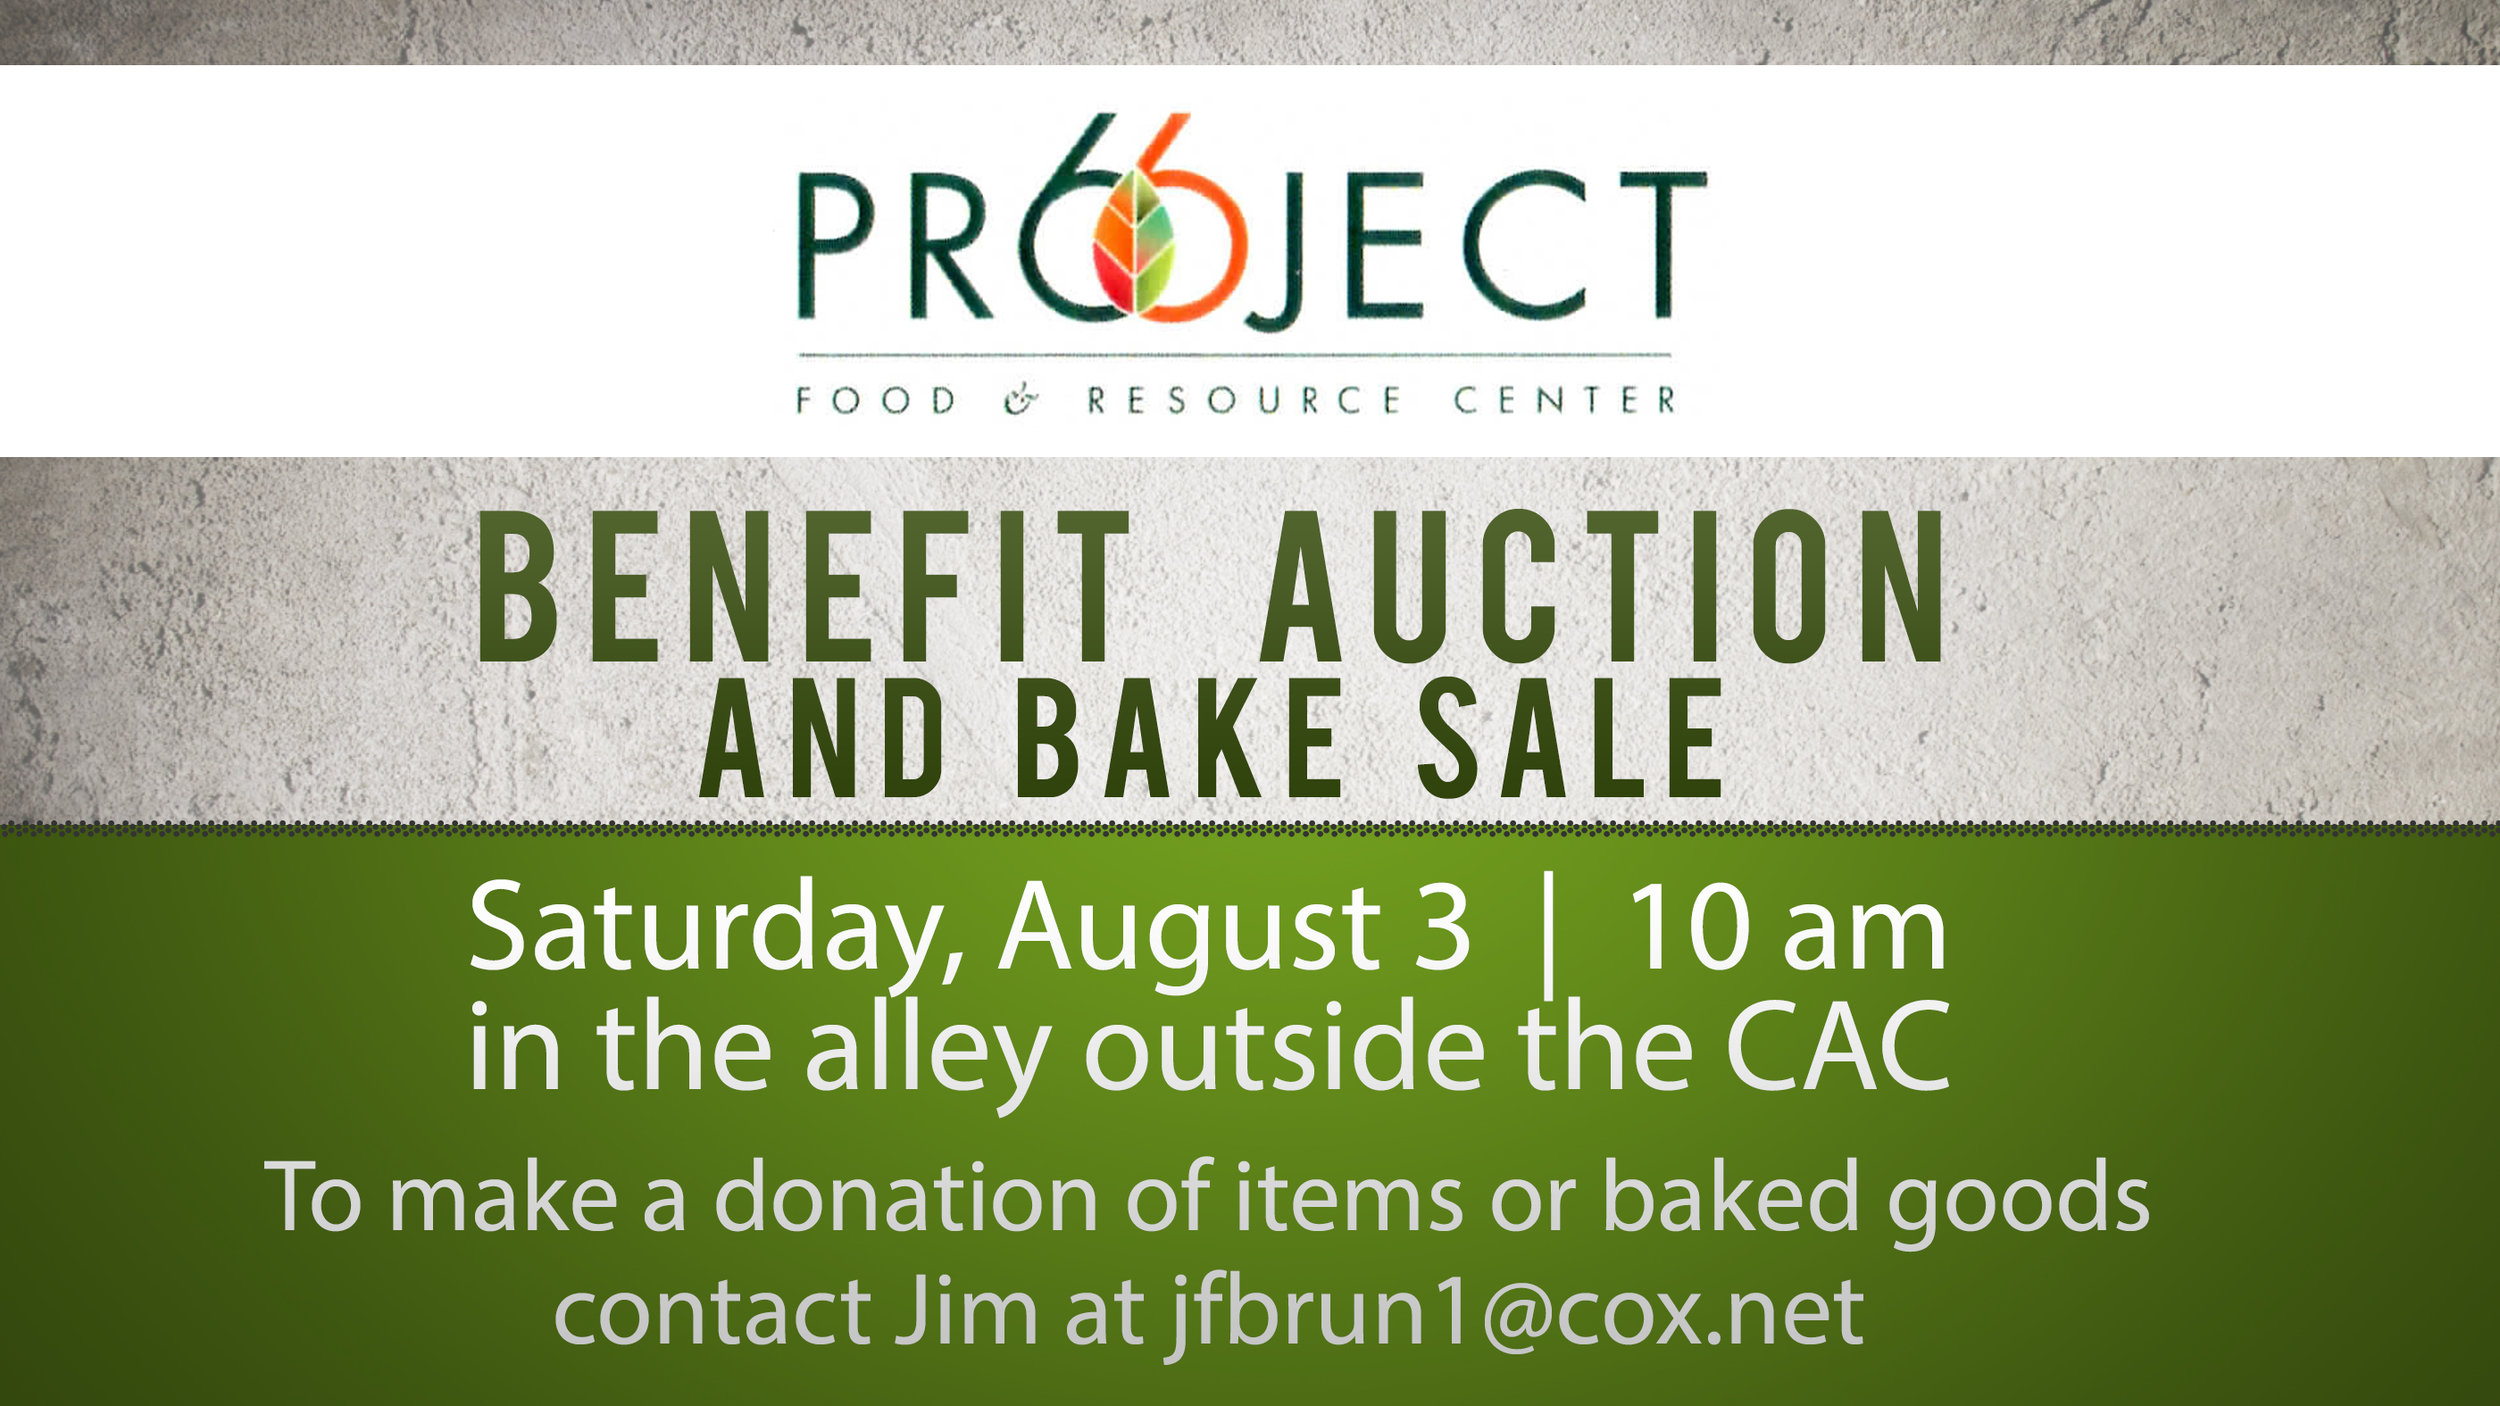 project 66 auction.jpg